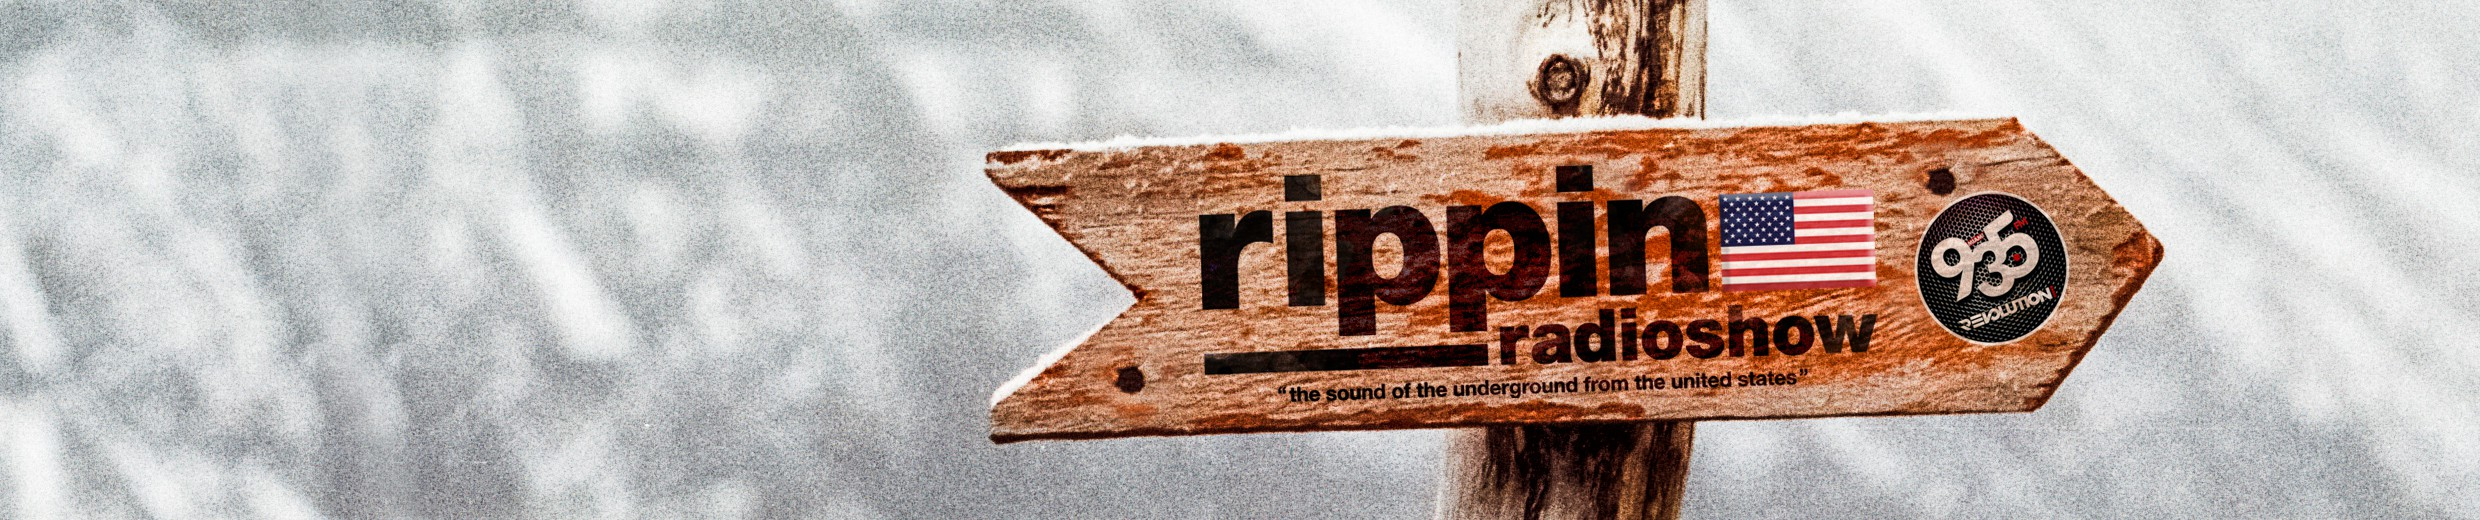 Banner Design Needed for Rippin Radio Soundcloud